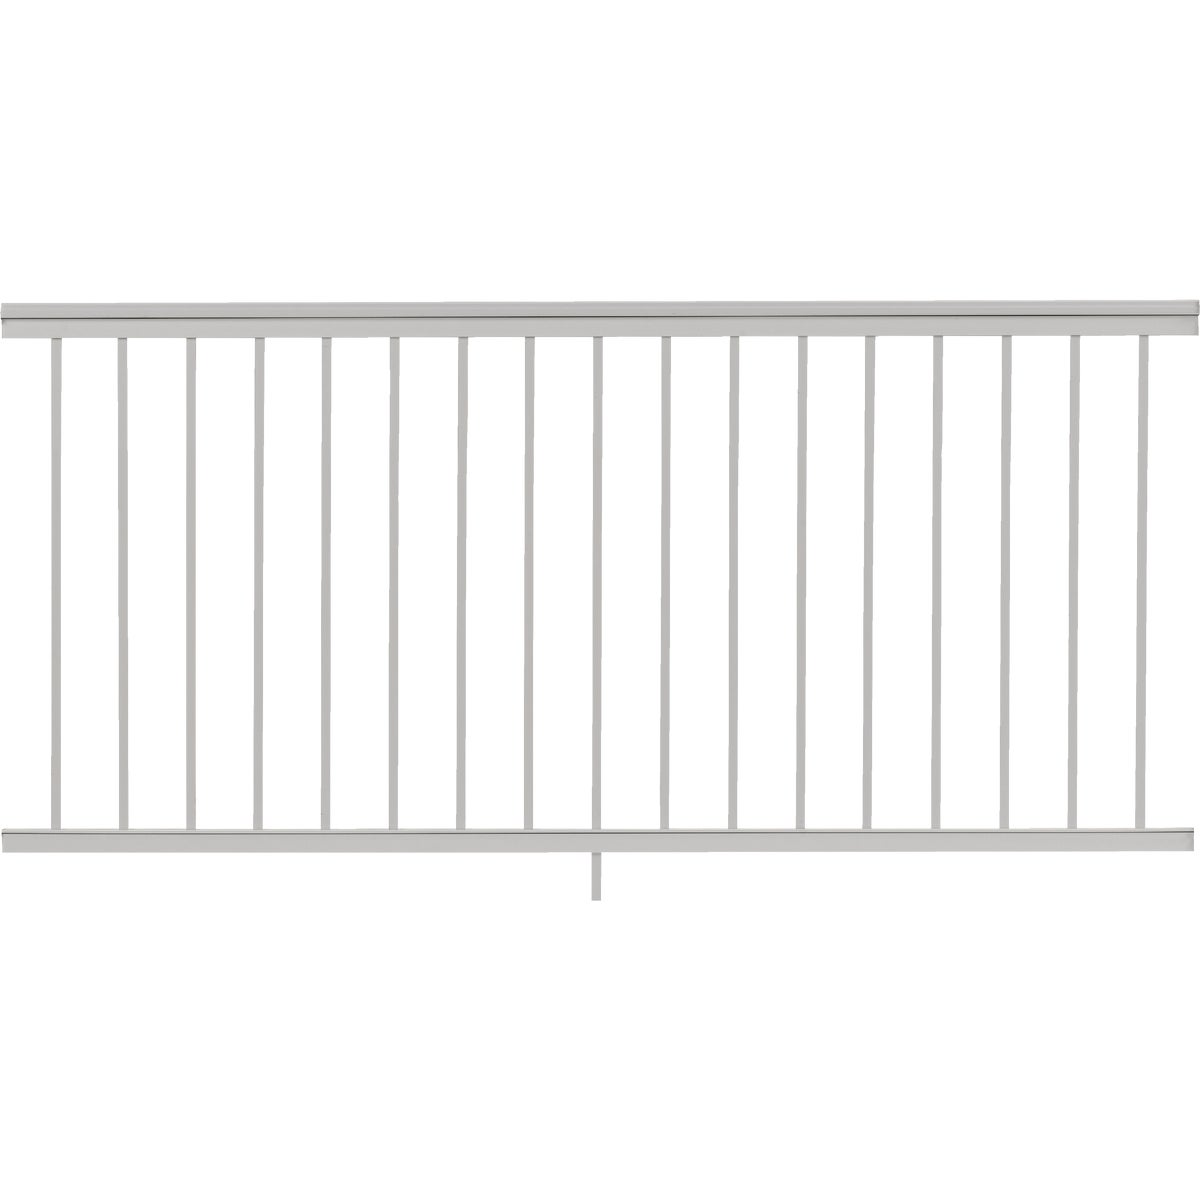 "36""X6' WHT SPINDLE RAIL - 619051W by Gilpin Inc"